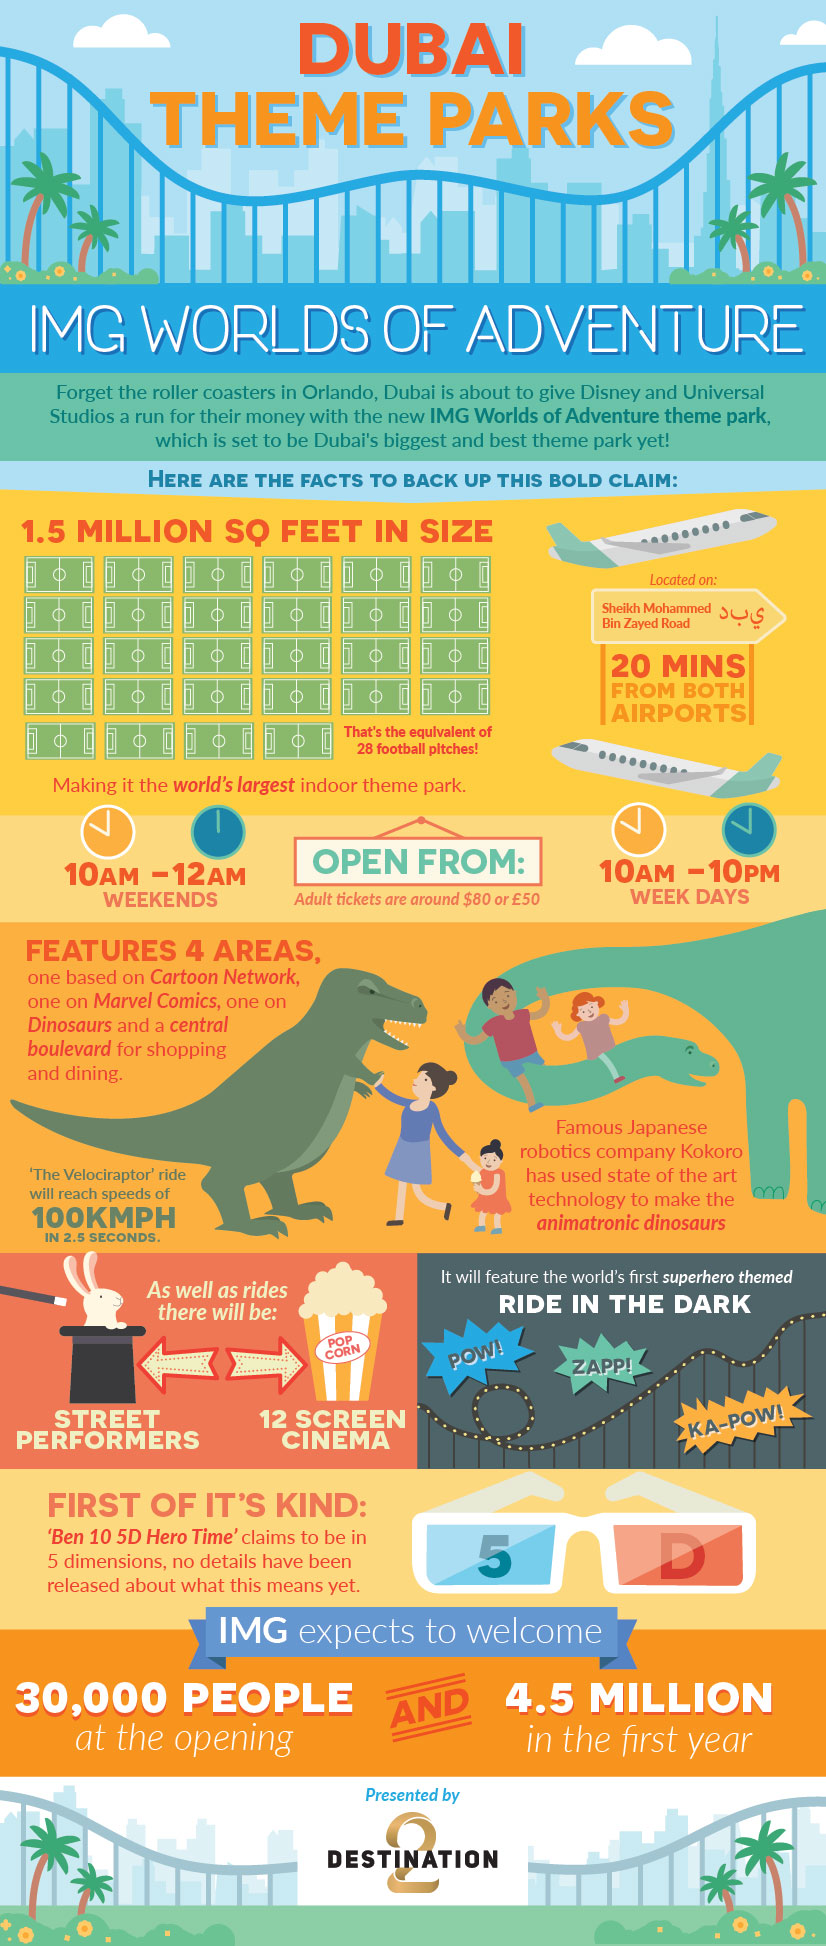 An infographic about IMG Worlds of Adventure